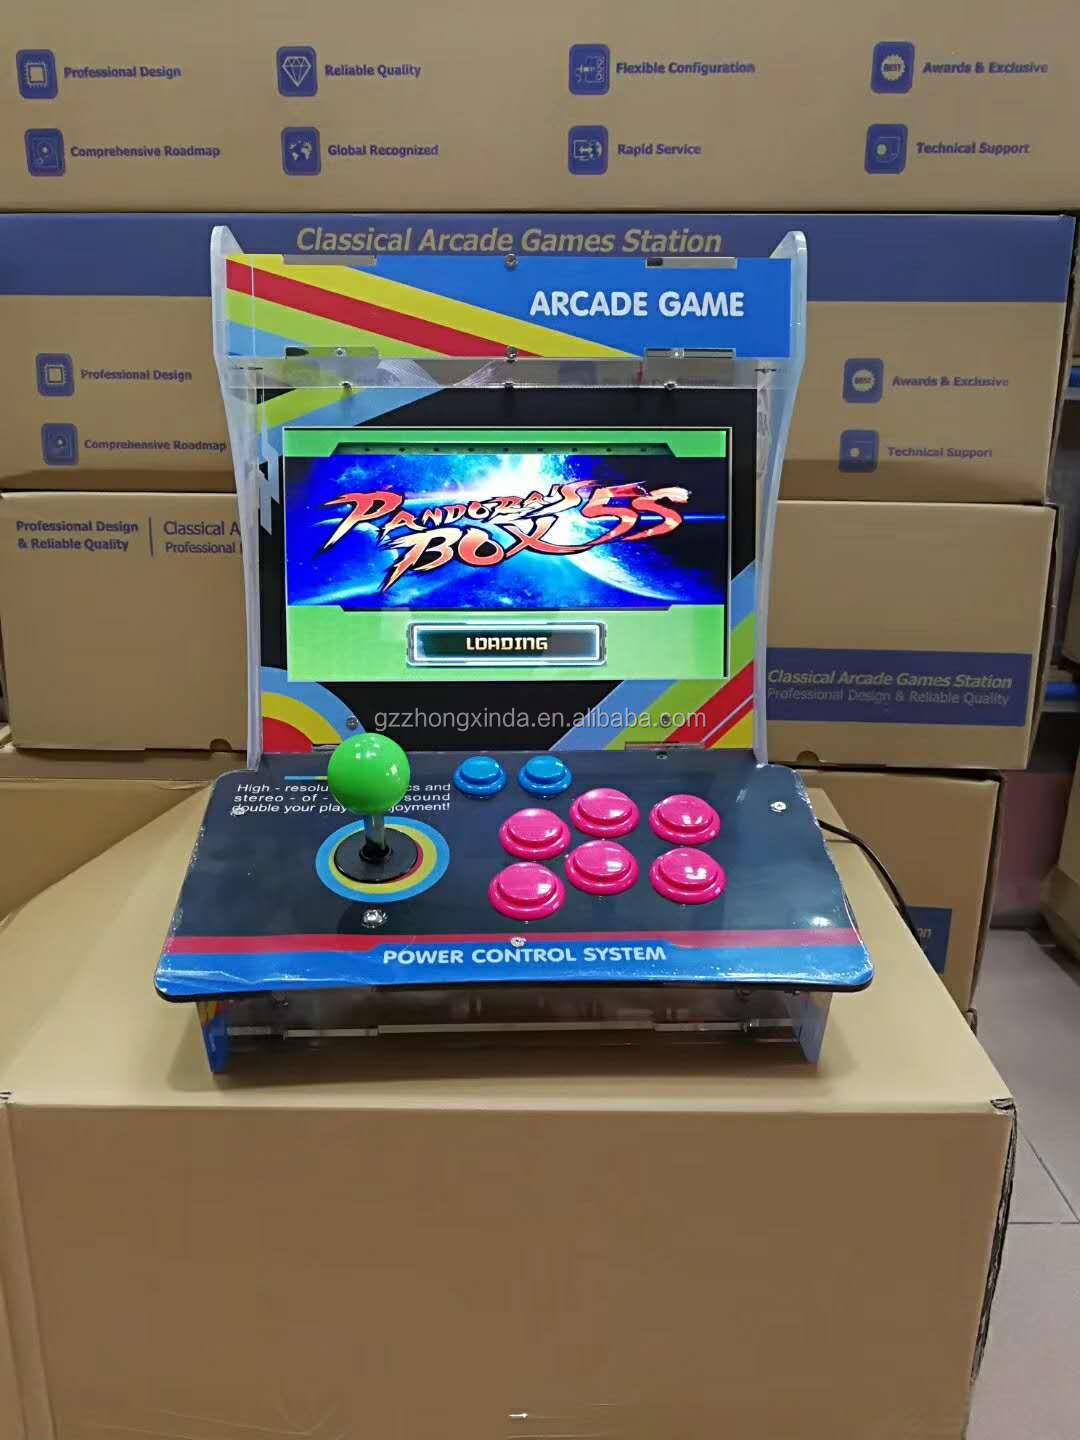 999 Games Arcade Video Game Console Pandora Box 7 With 999 Games Wholesale Pandora Box Jamma Buy Pandora Box 7 Pandora Box Jamma Wholesale Pandora Box Product